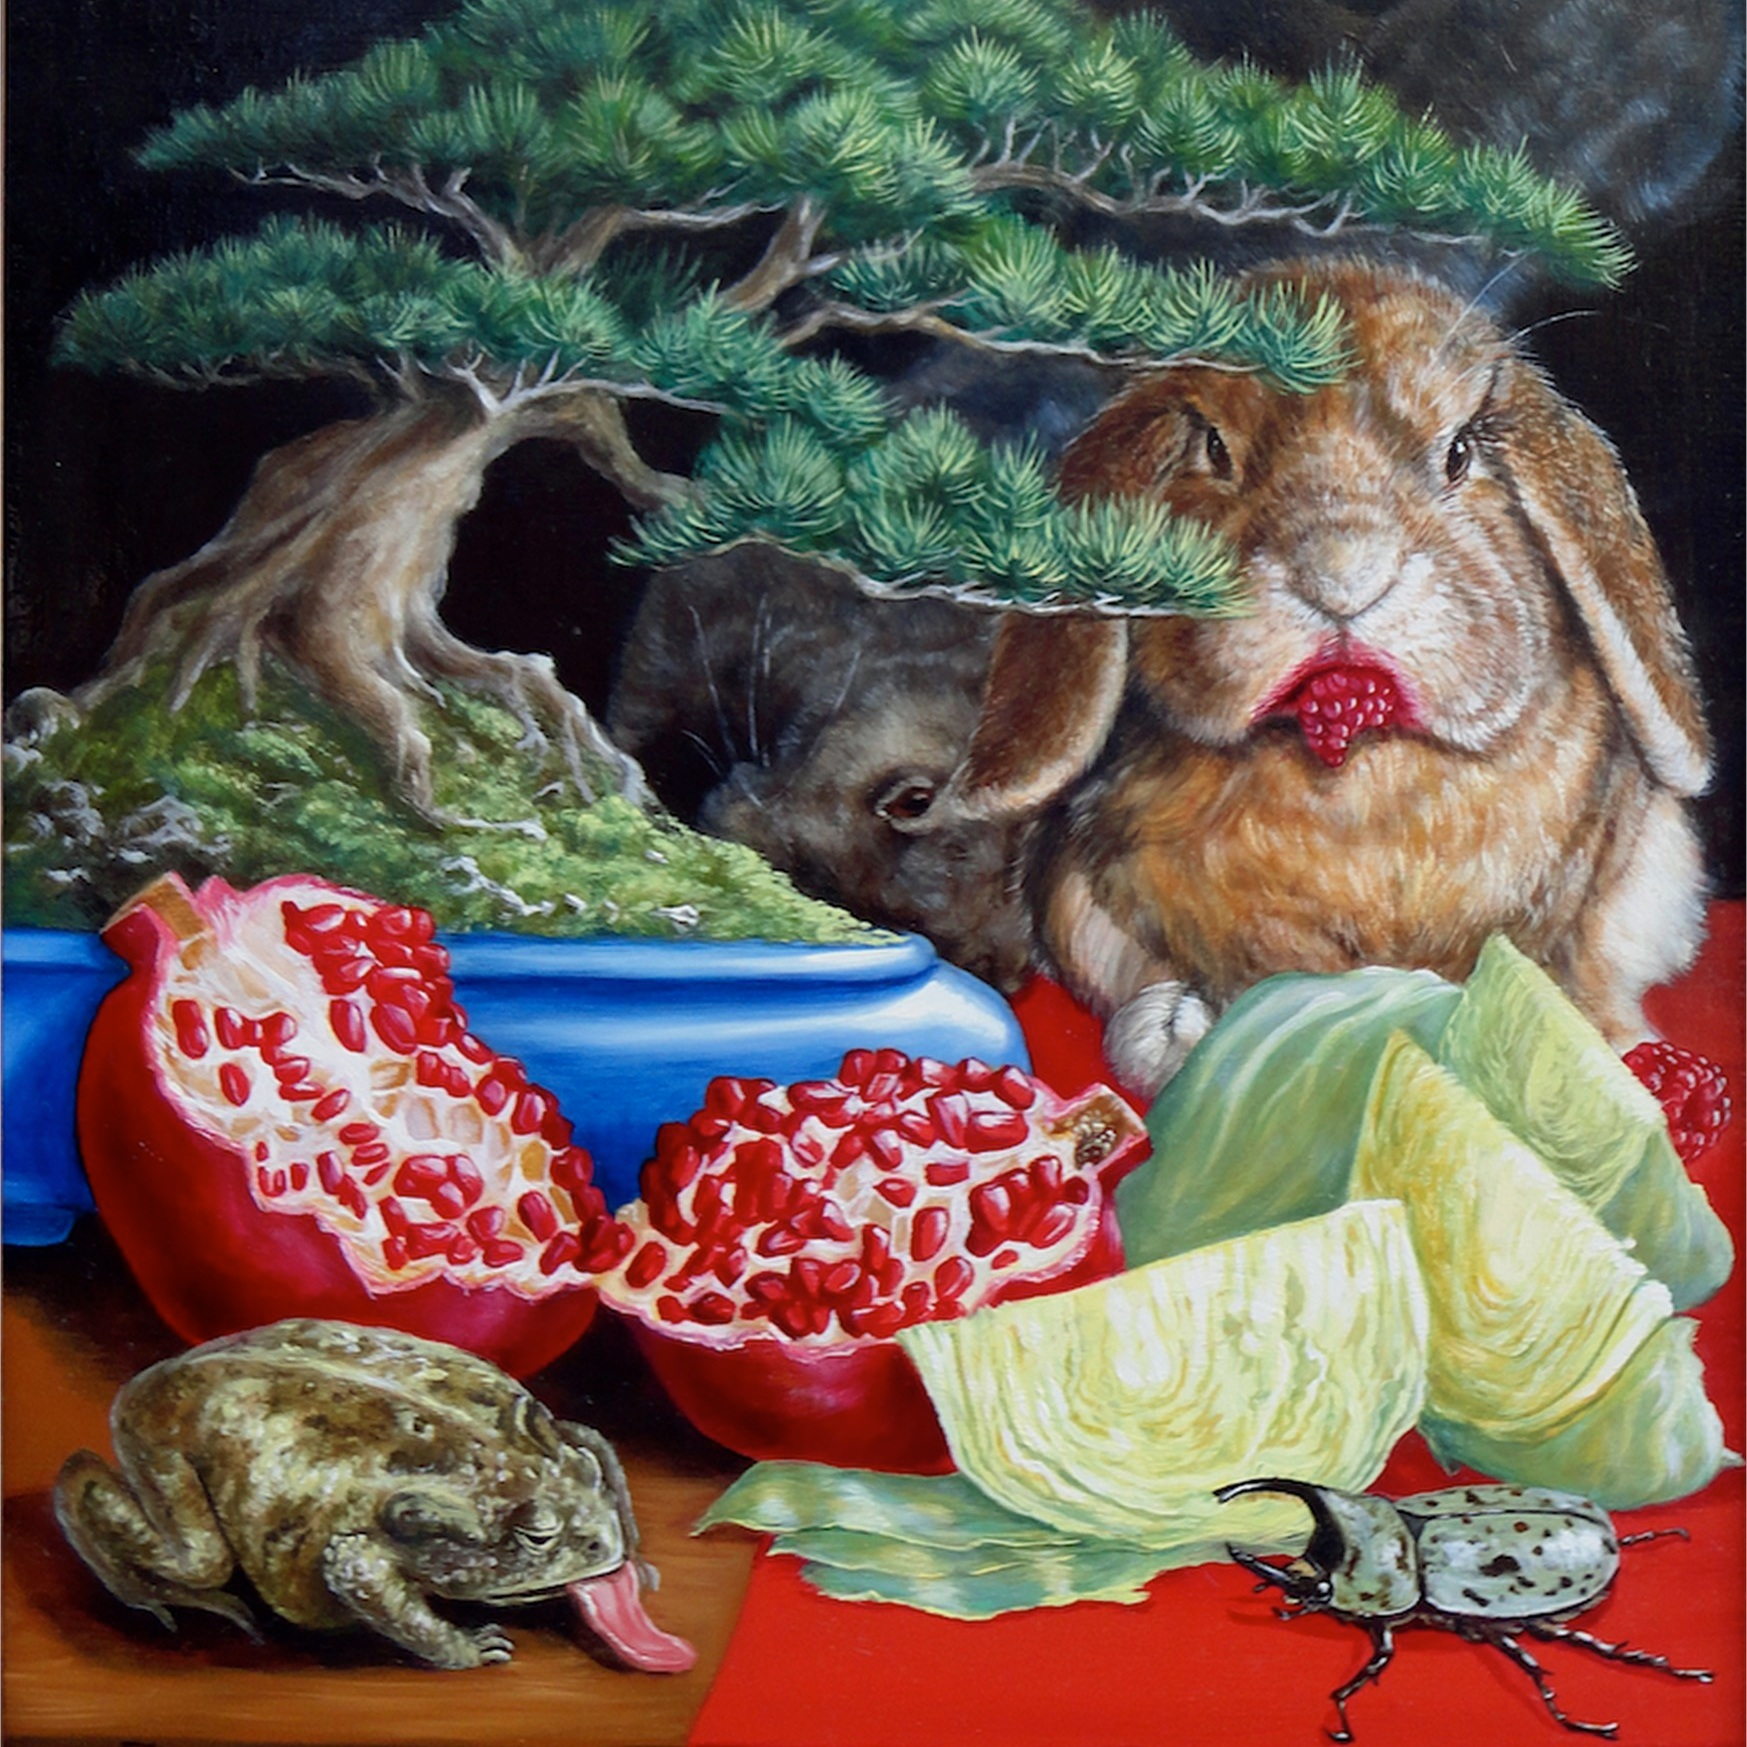 Boiled Cabbage with Bonsai Tree, Pomegranate, and Cute Creatures -